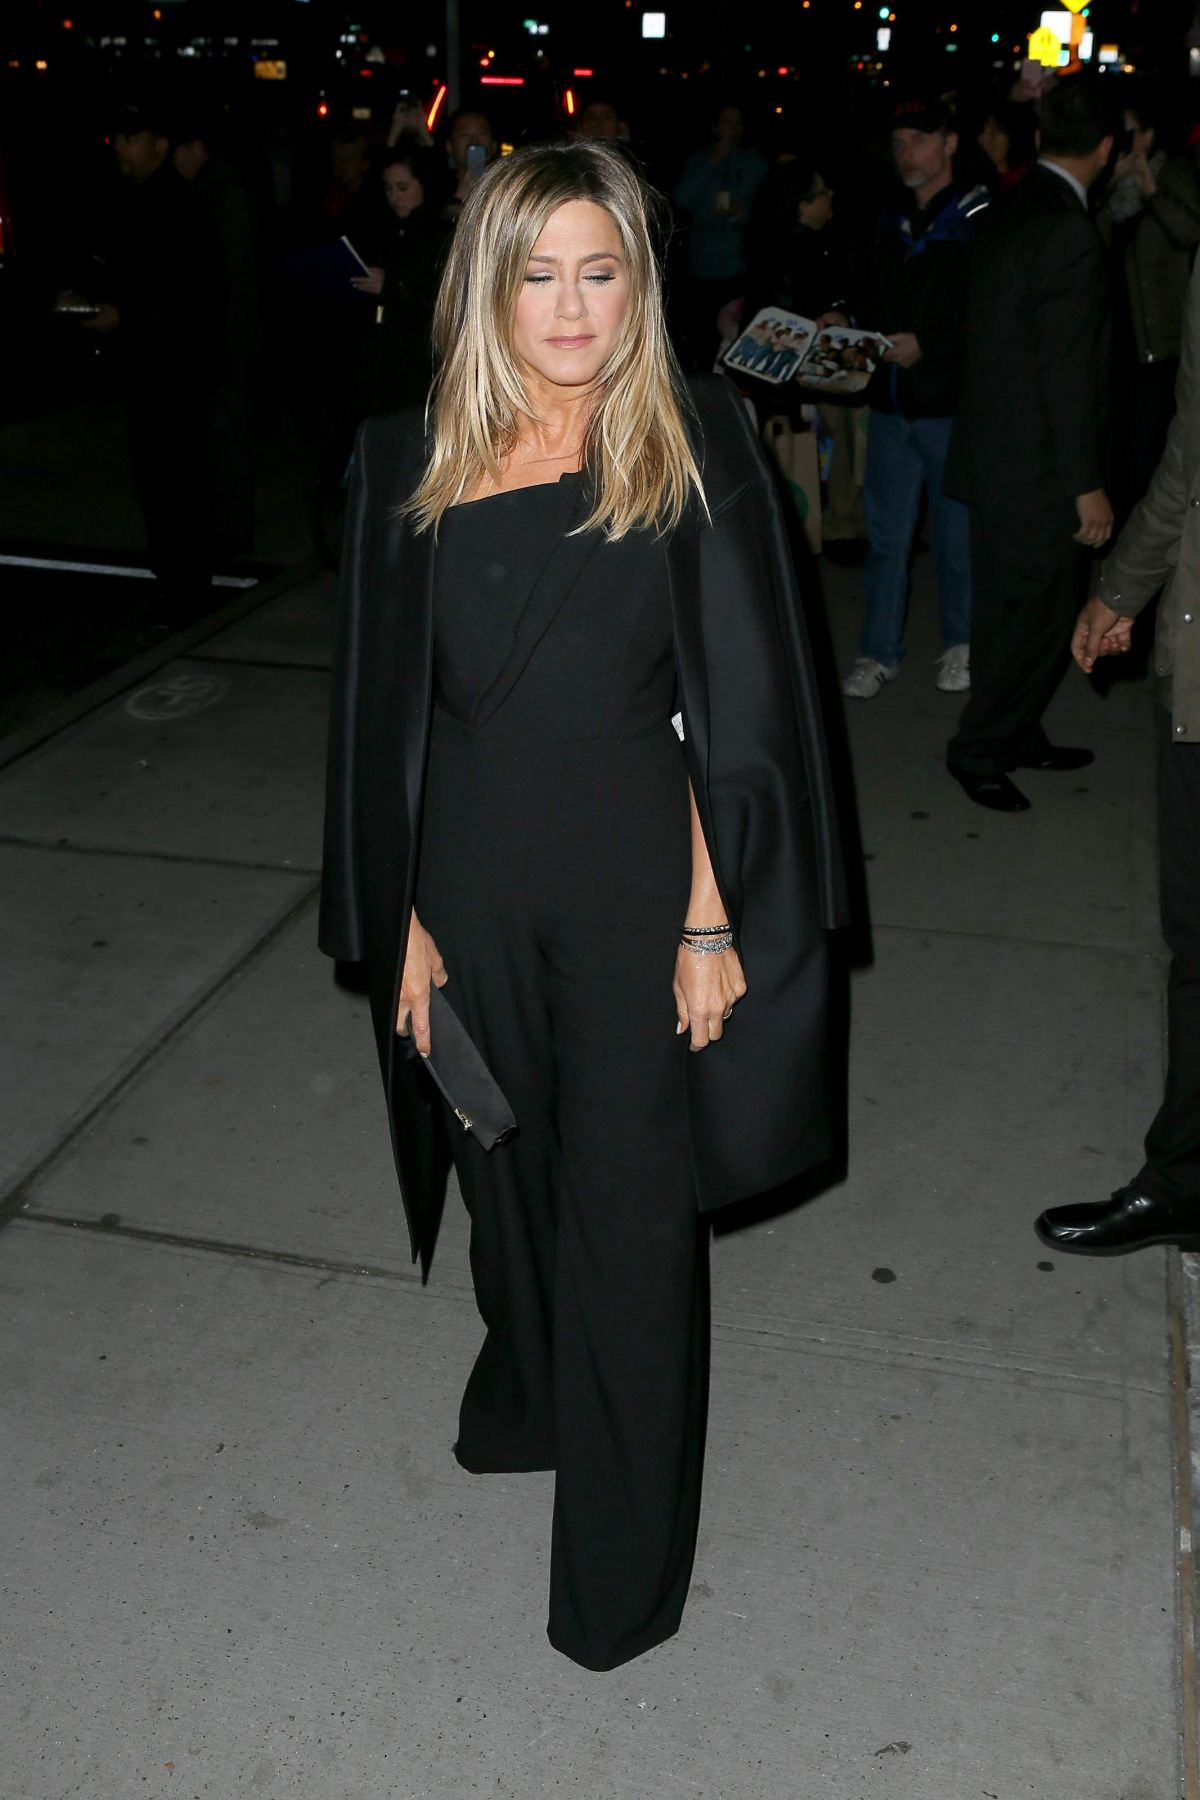 Jennifer Aniston Seen at 'Office Christmas Party' at Landmark Sunshine Cinema, NY   jennifer-aniston-seen-at-office-christmas-party-at-landmark-sunshine-cinema-ny_7